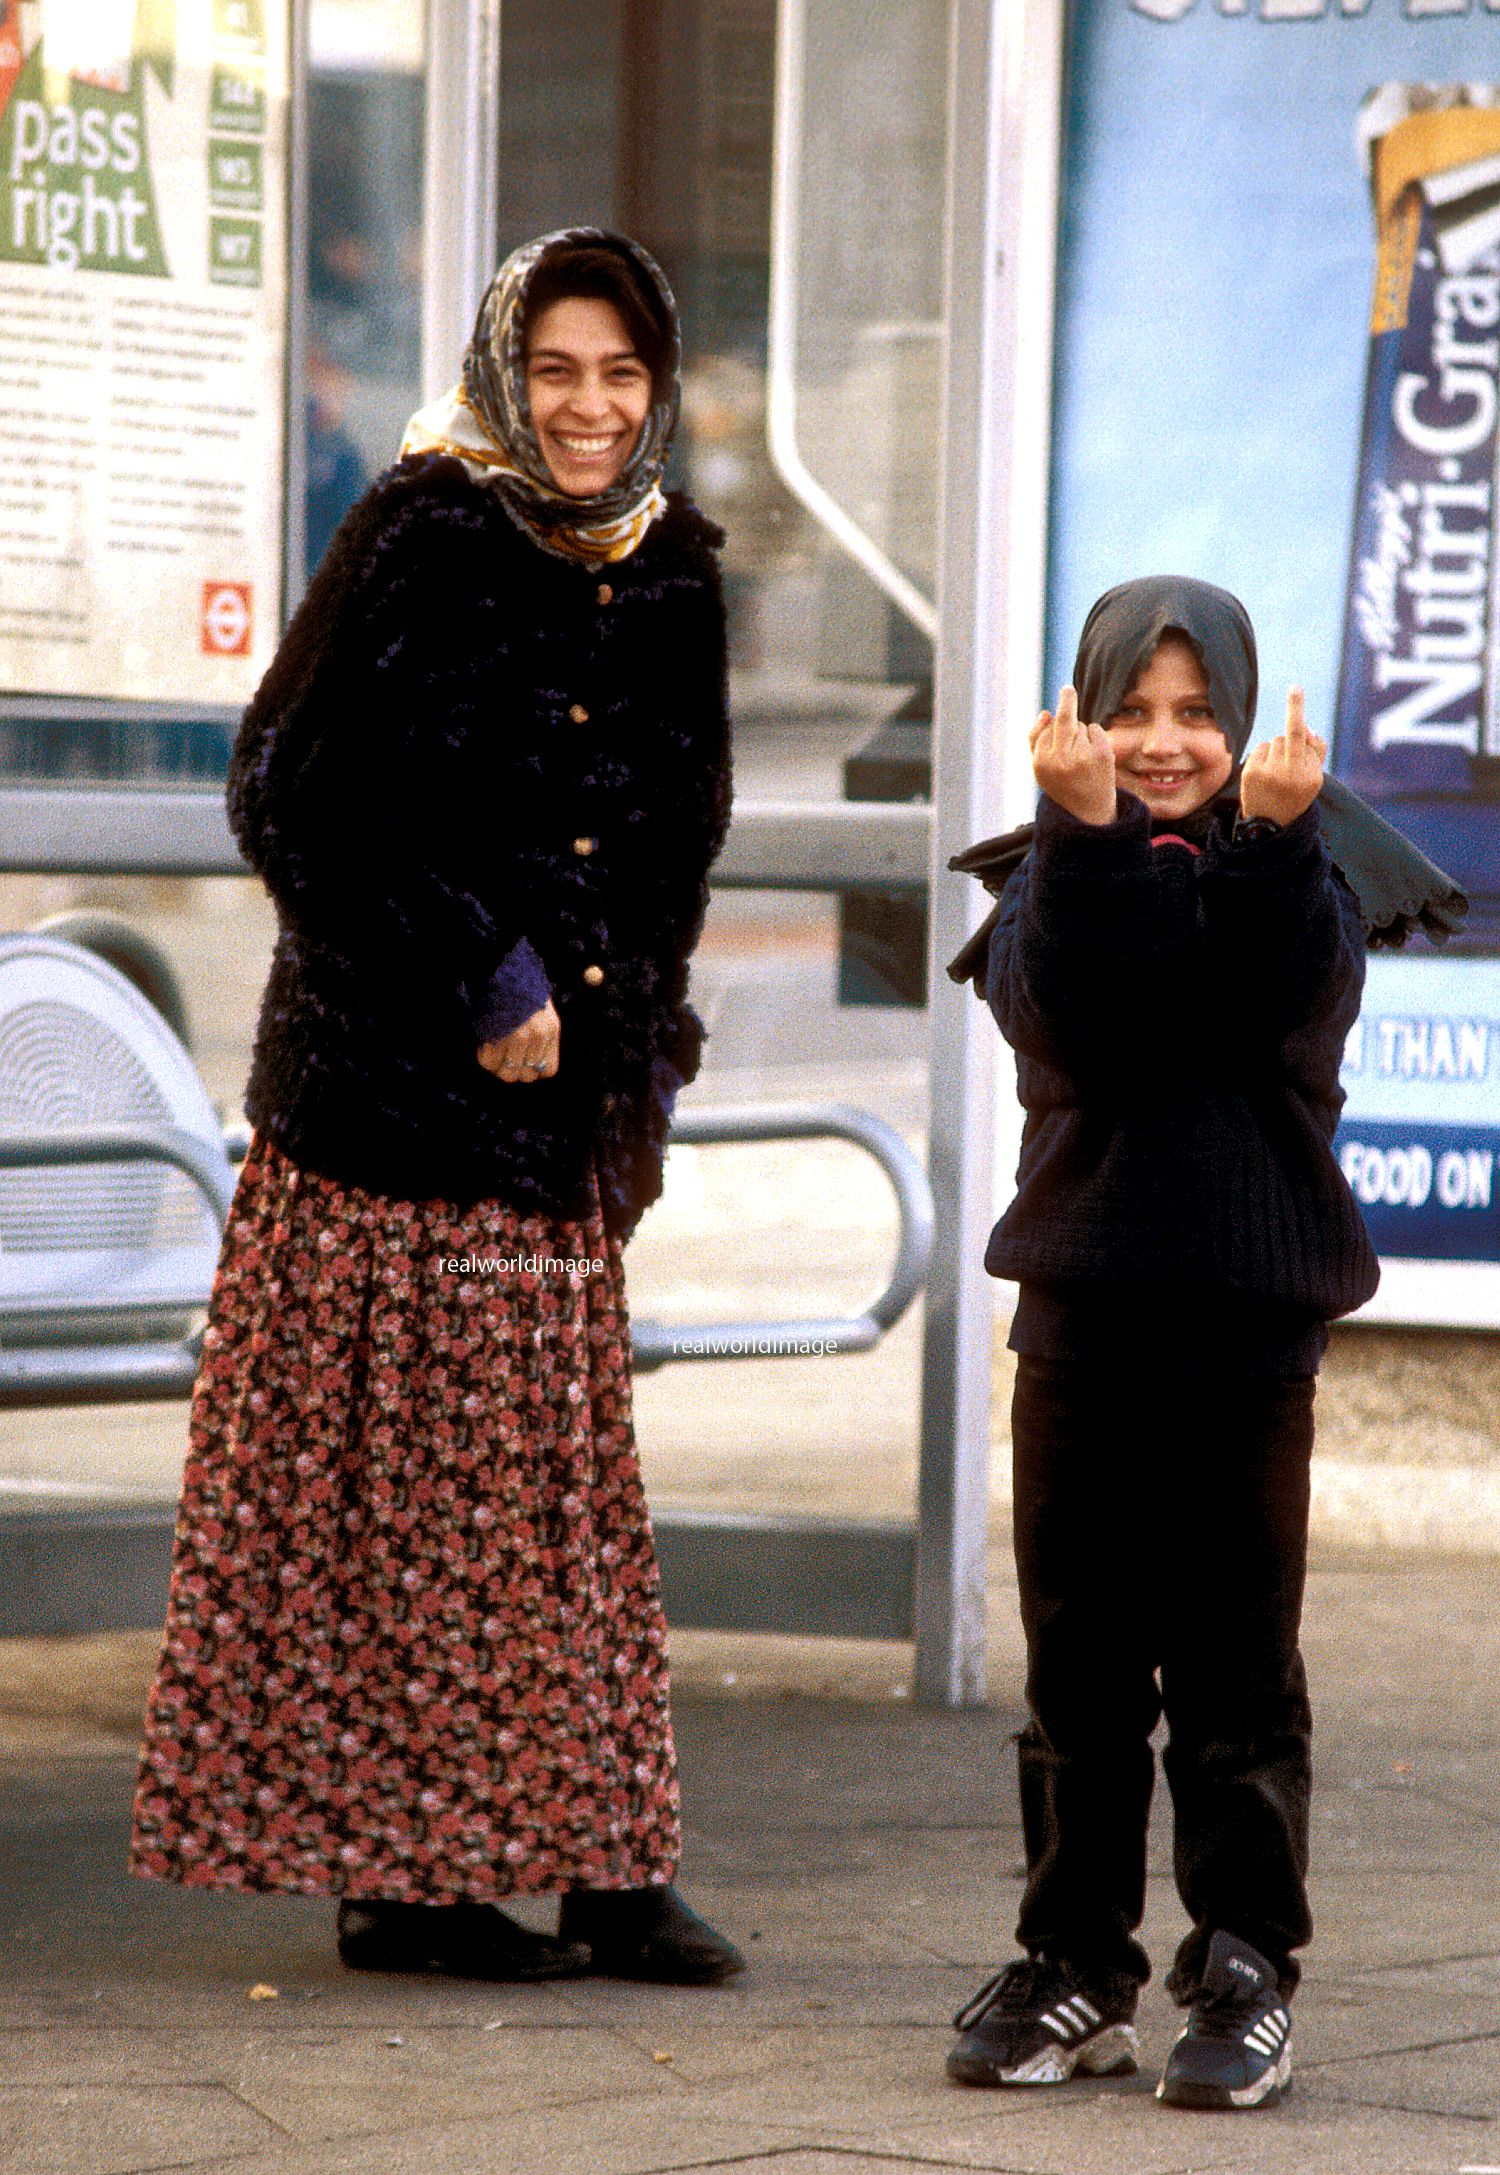 Met some Romanian gypsies when I lived in Wood Green, North